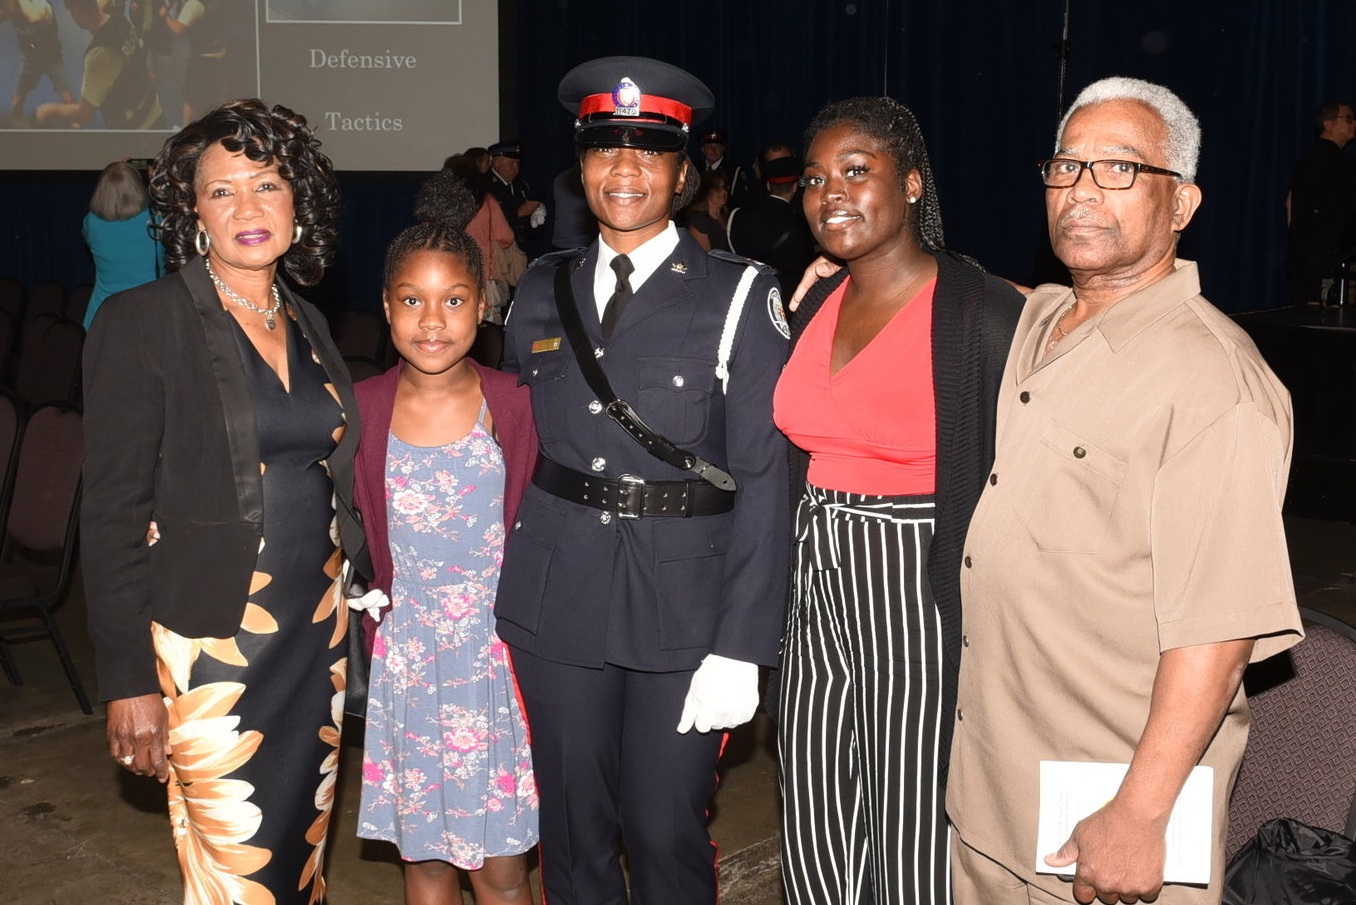 Const. Nathalee Thompson with her parents Delroy Thompson & Eulalee Robinson and children Zakiyyah Williams & Zyanne Thompson